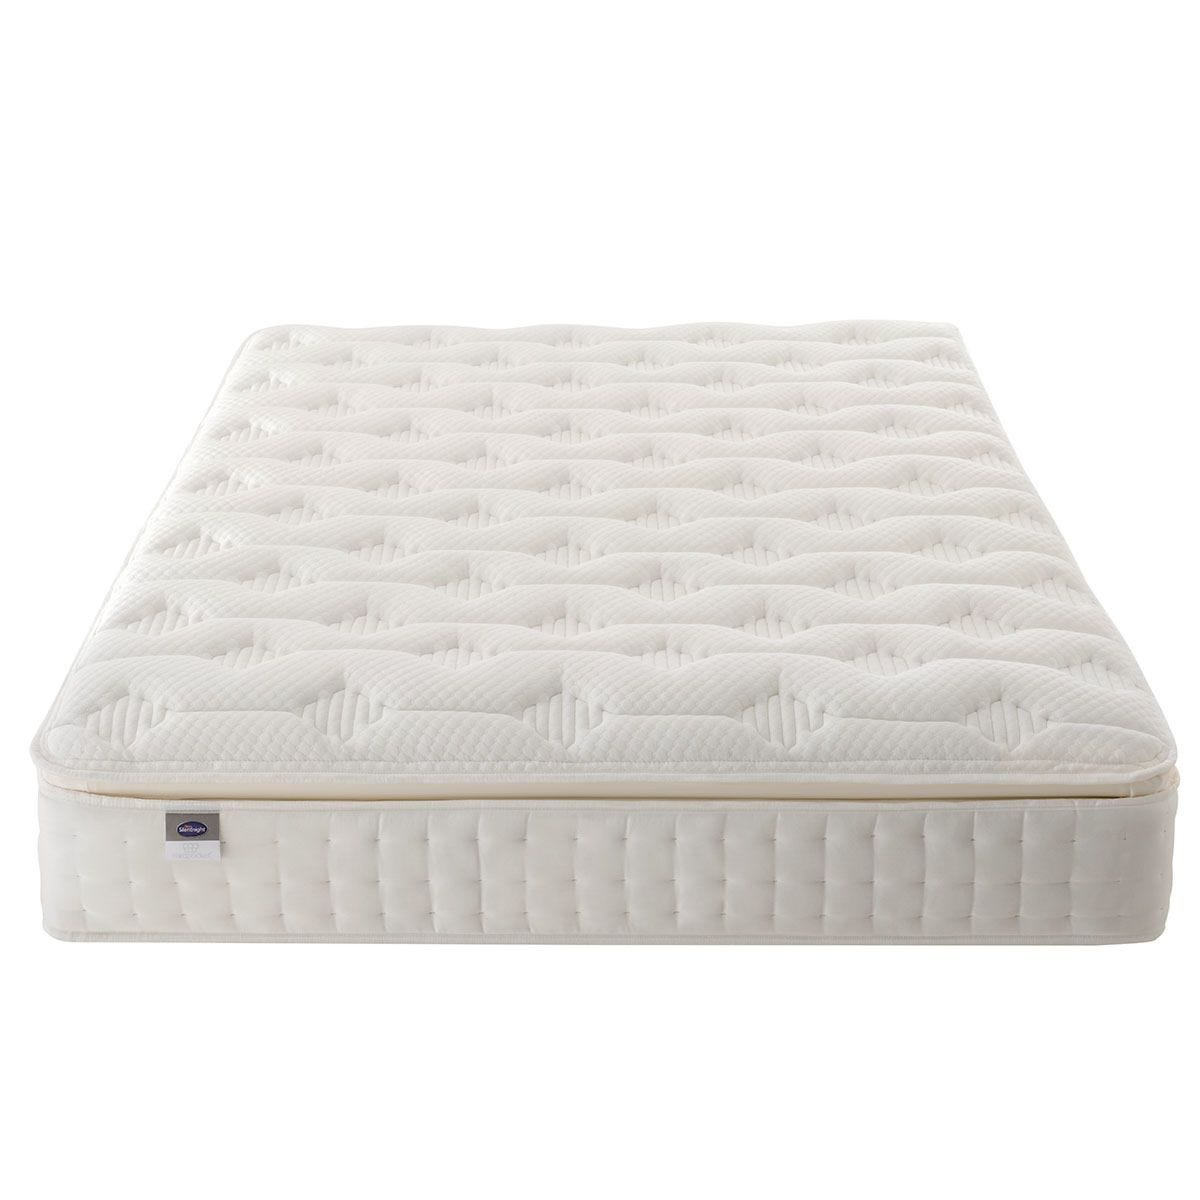 Silentnight Mirapocket Latex 1000 Mattress - White Super King